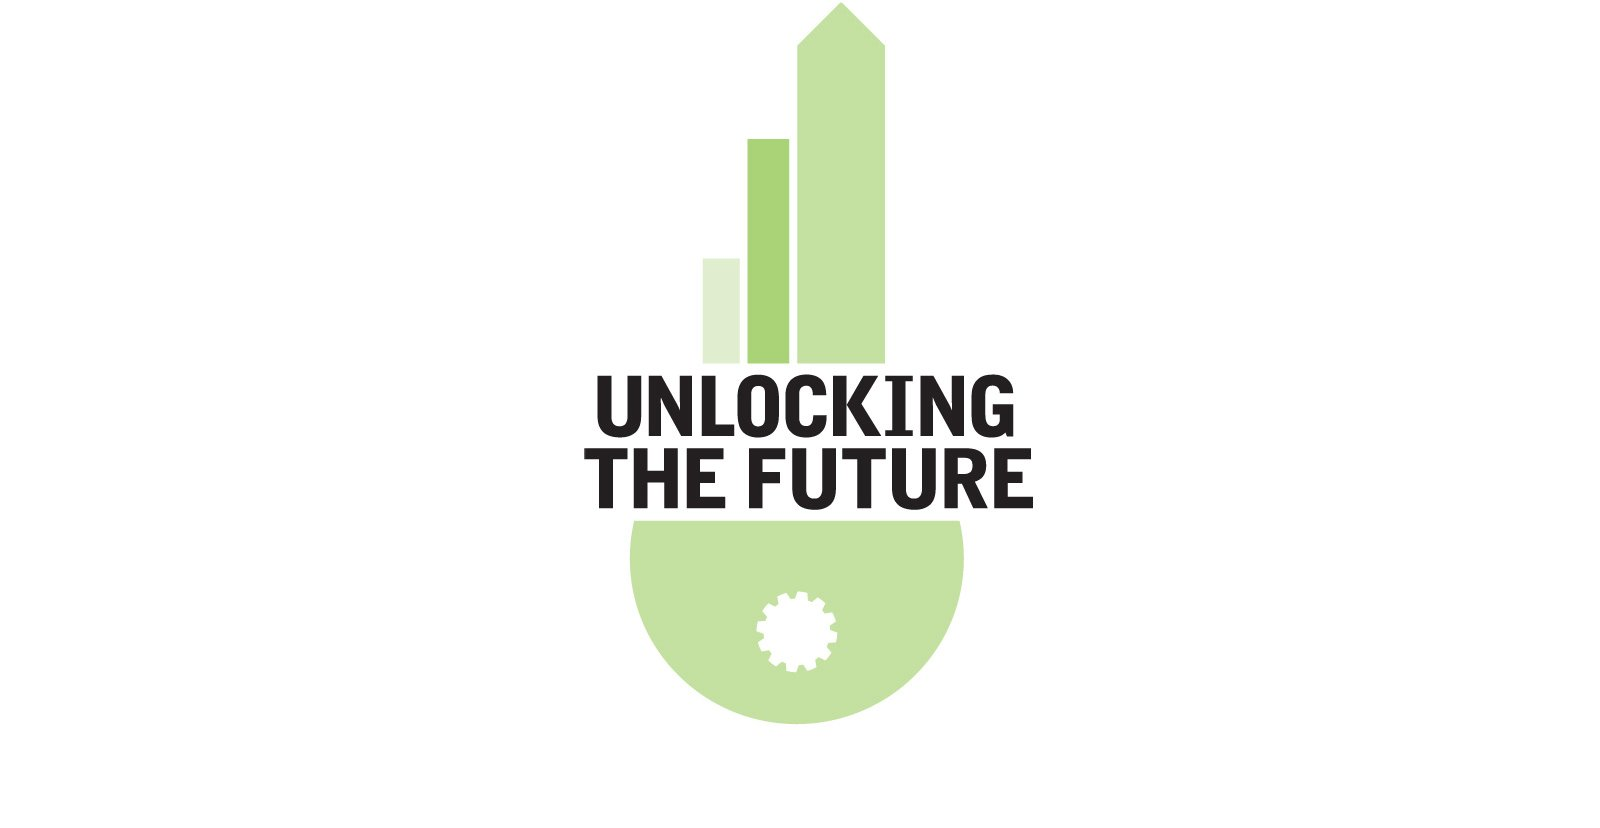 Unlocking the Future